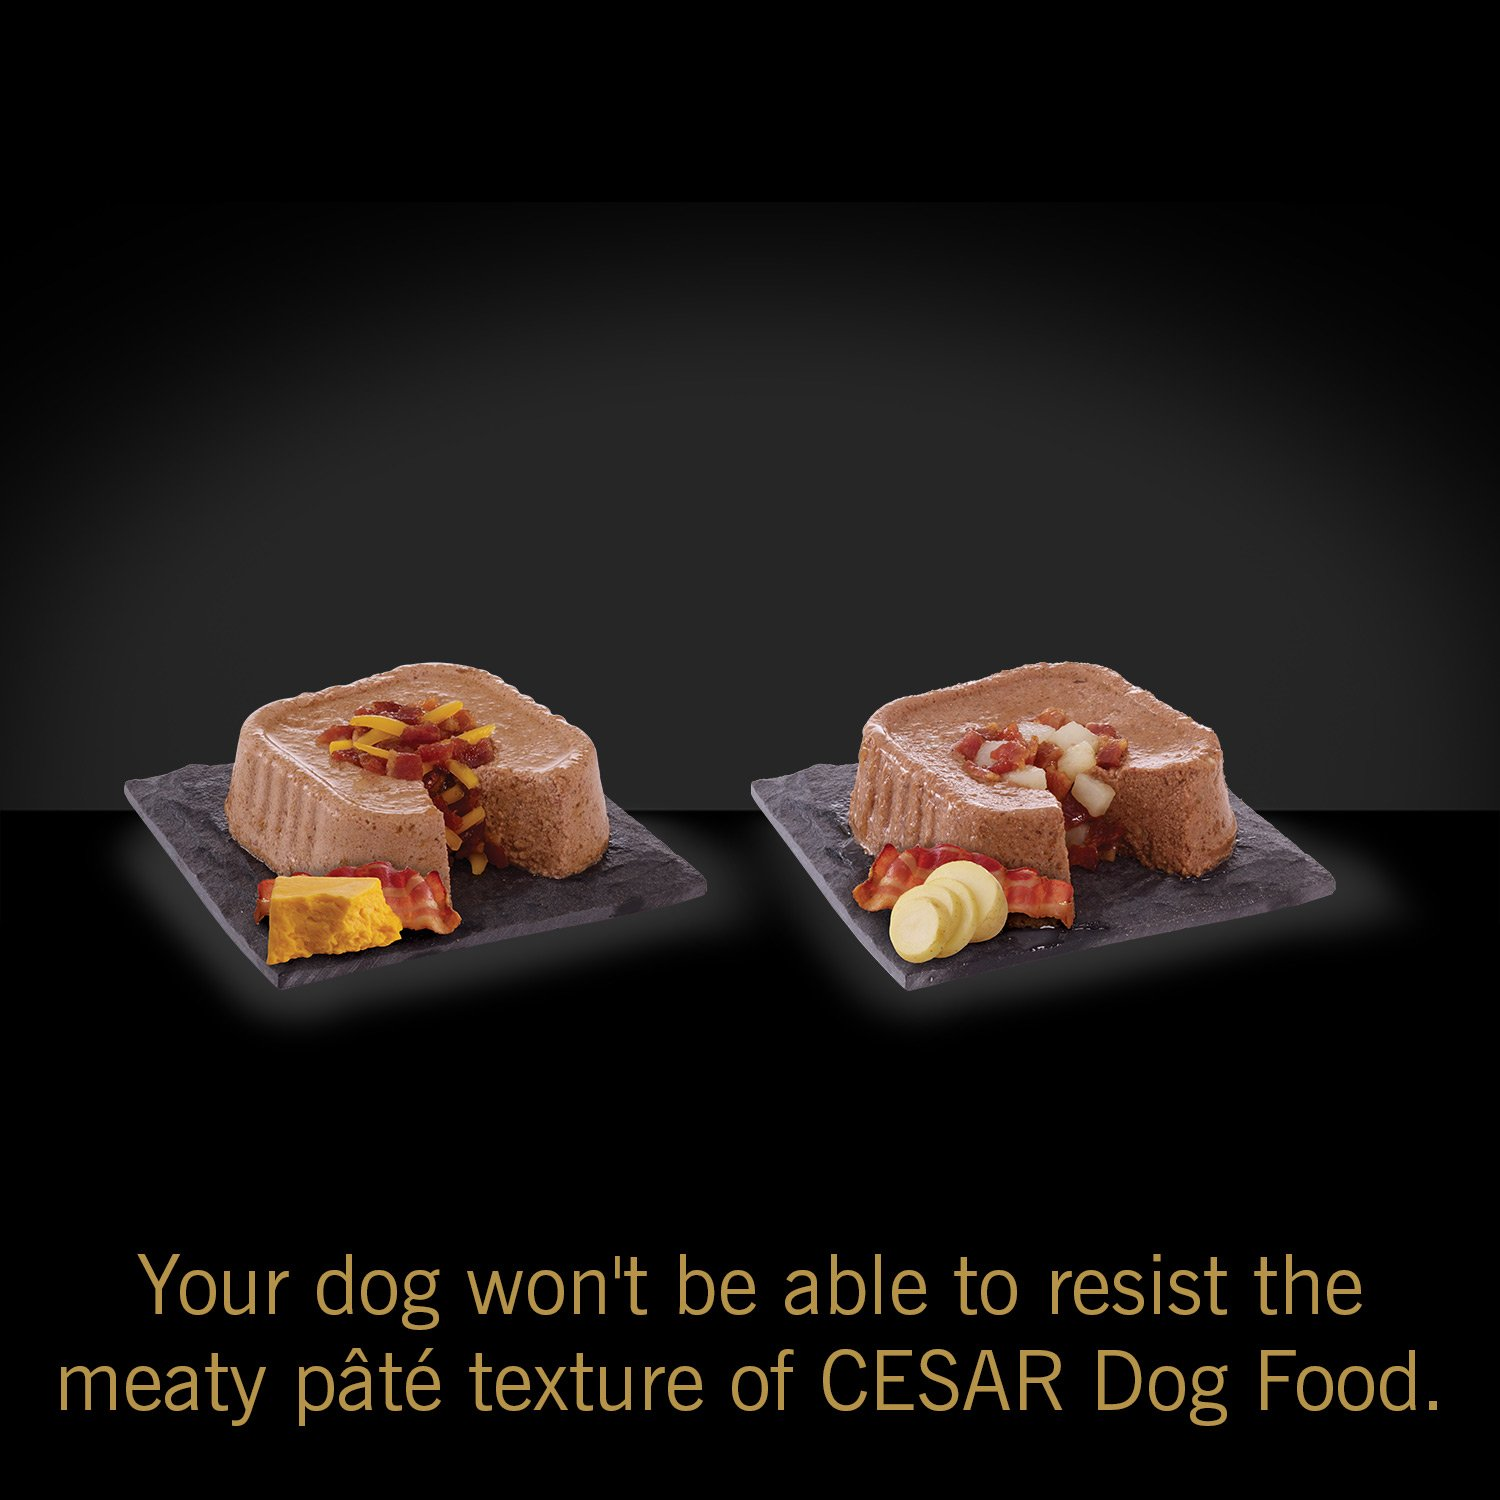 Cesar Savory Delights Variety Pack Rotisserie Chicken Flavor With Locklock Food Container Classics 34l Hpl848 Bacon And Cheese Filet Mignon Potato Dog Trays 35 Ounce